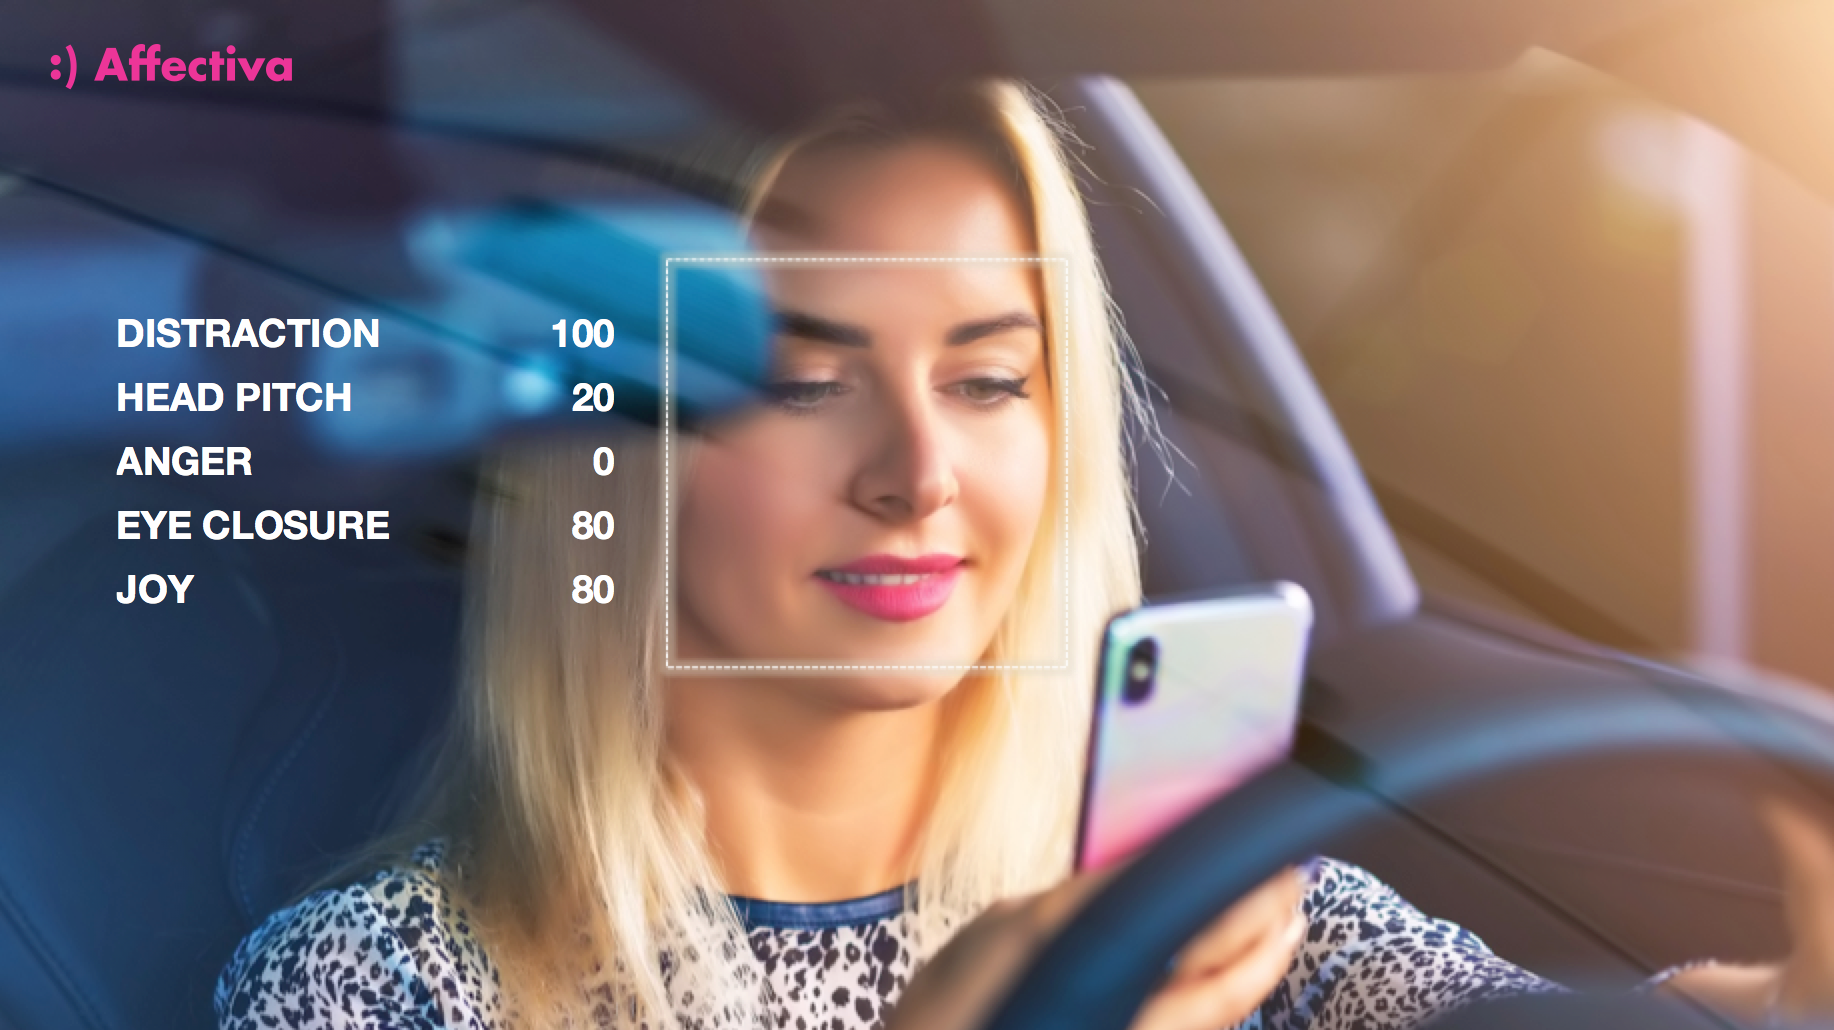 Global Auto Leasing >> Affectiva's AI Tech Detects Driver Emotions - Safety - Automotive Fleet